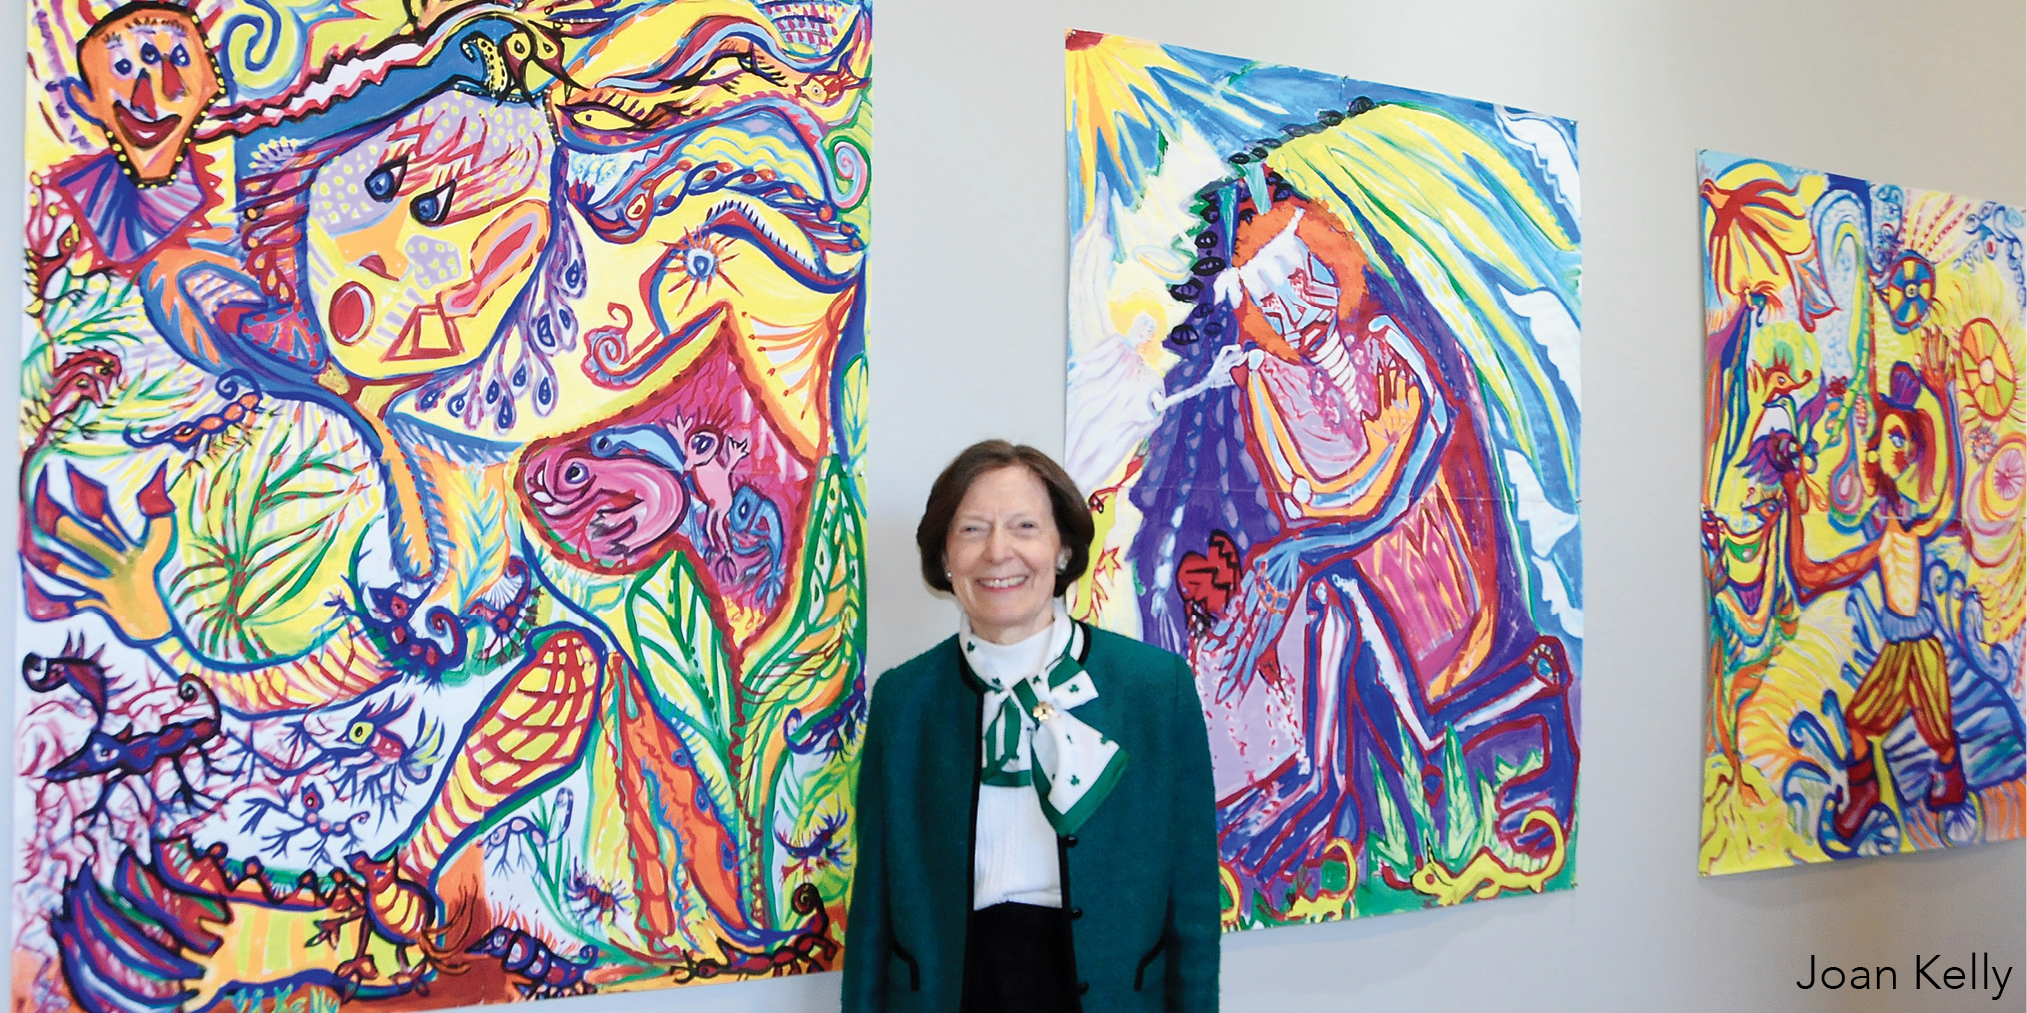 Joan Kelly with her paintings